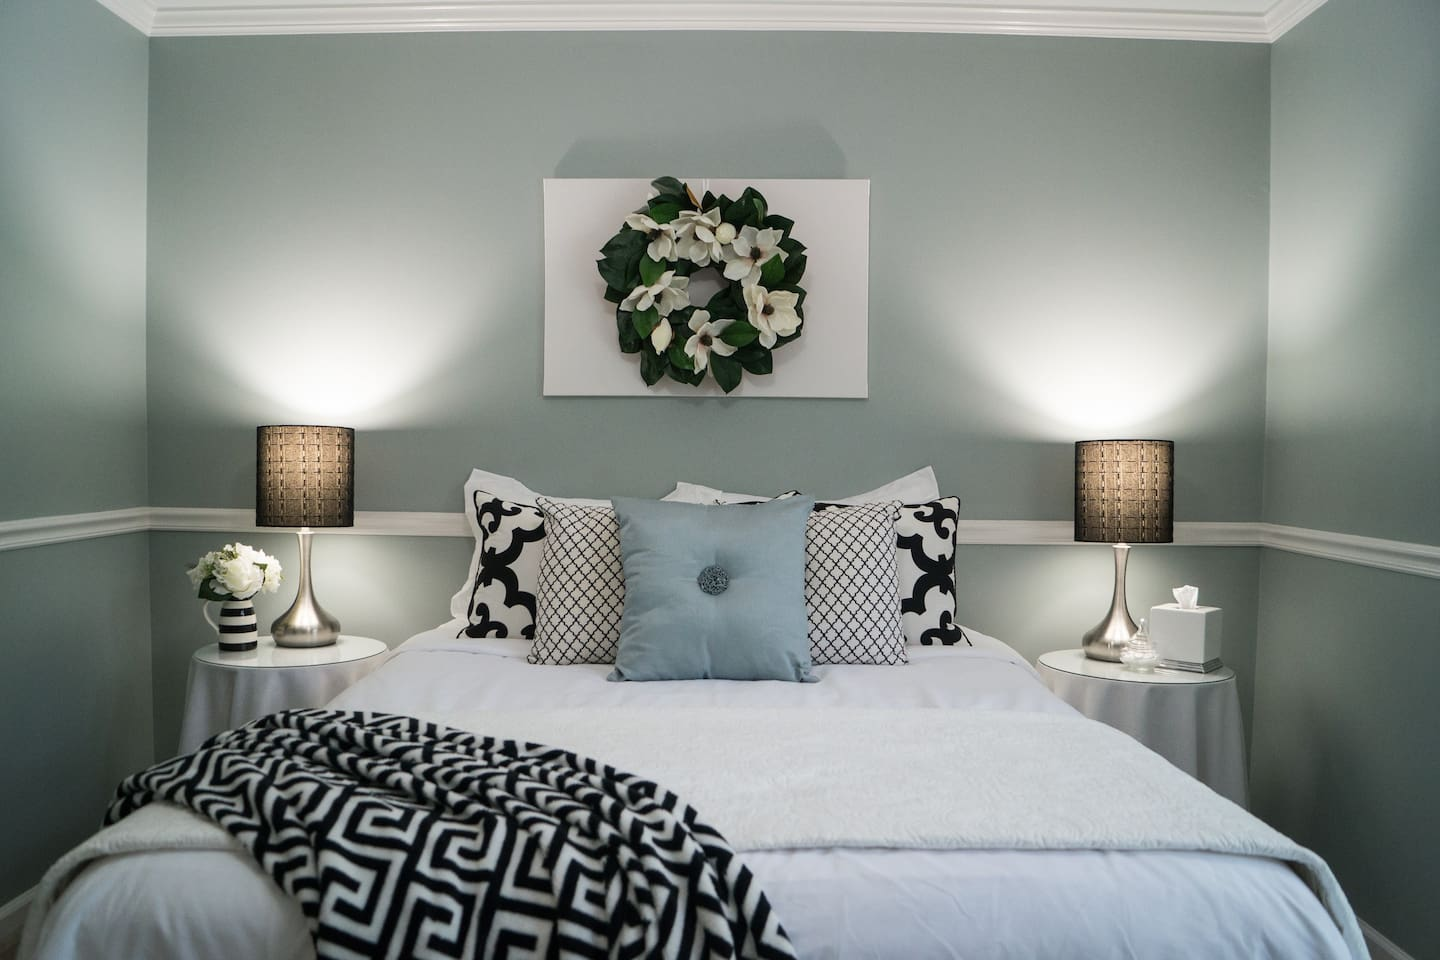 Welcome to your West Little Rock retreat! The queen bedroom has a super comfy bed.